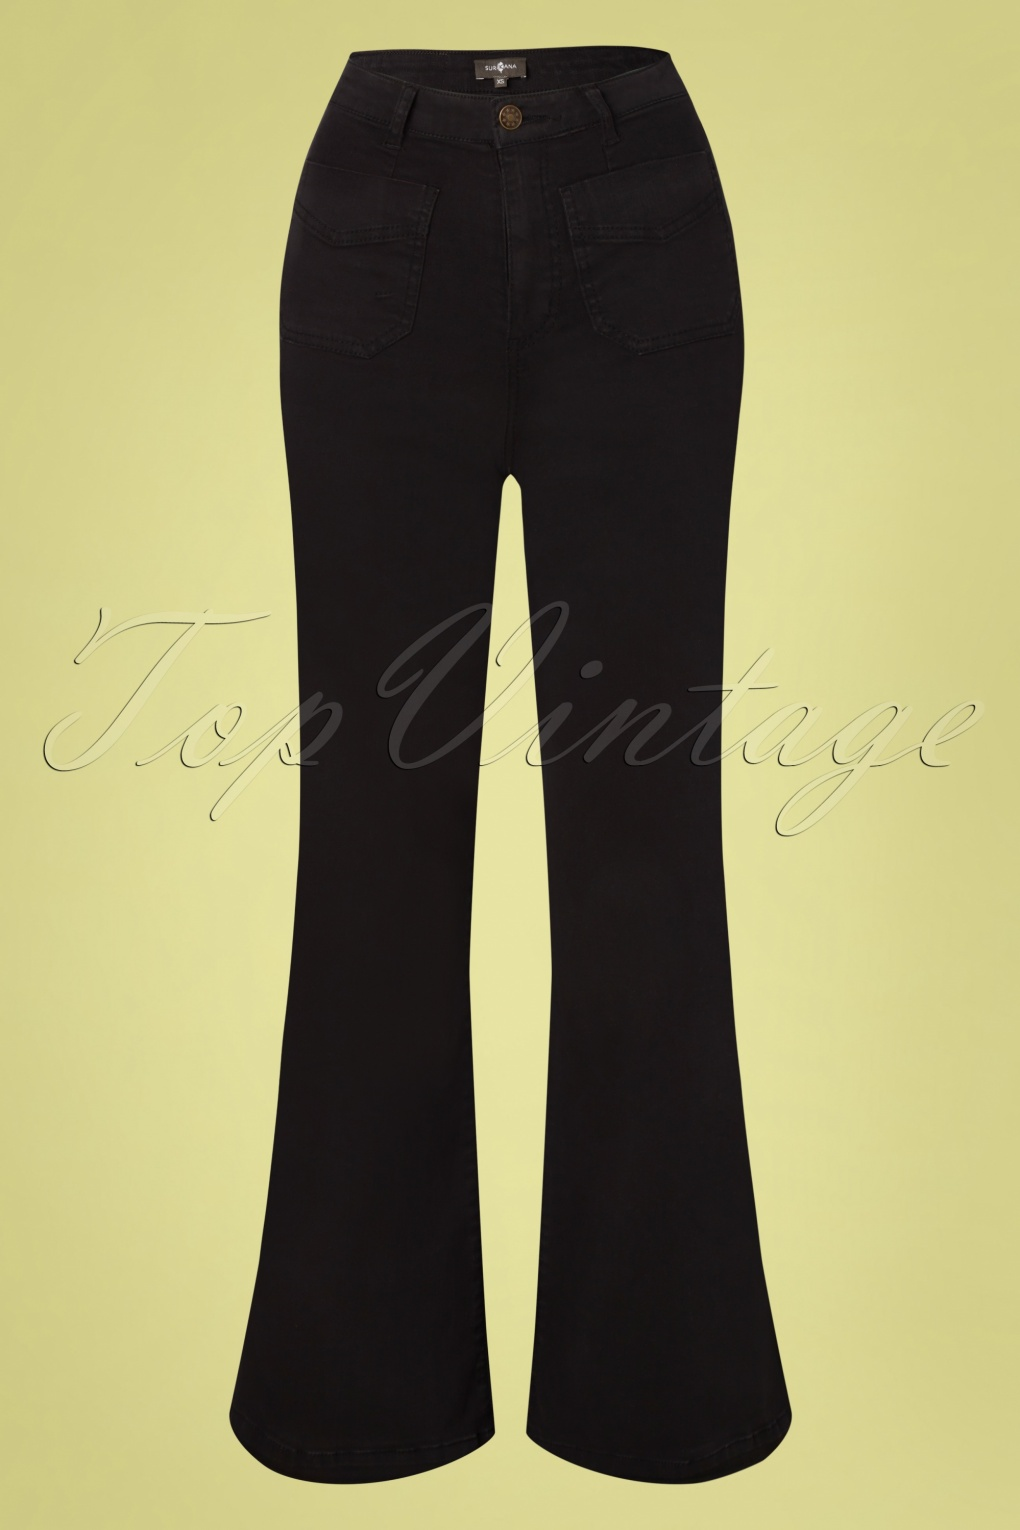 70s Clothes | Hippie Clothes & Outfits 70s Wendy Wide Trousers in Black £24.95 AT vintagedancer.com